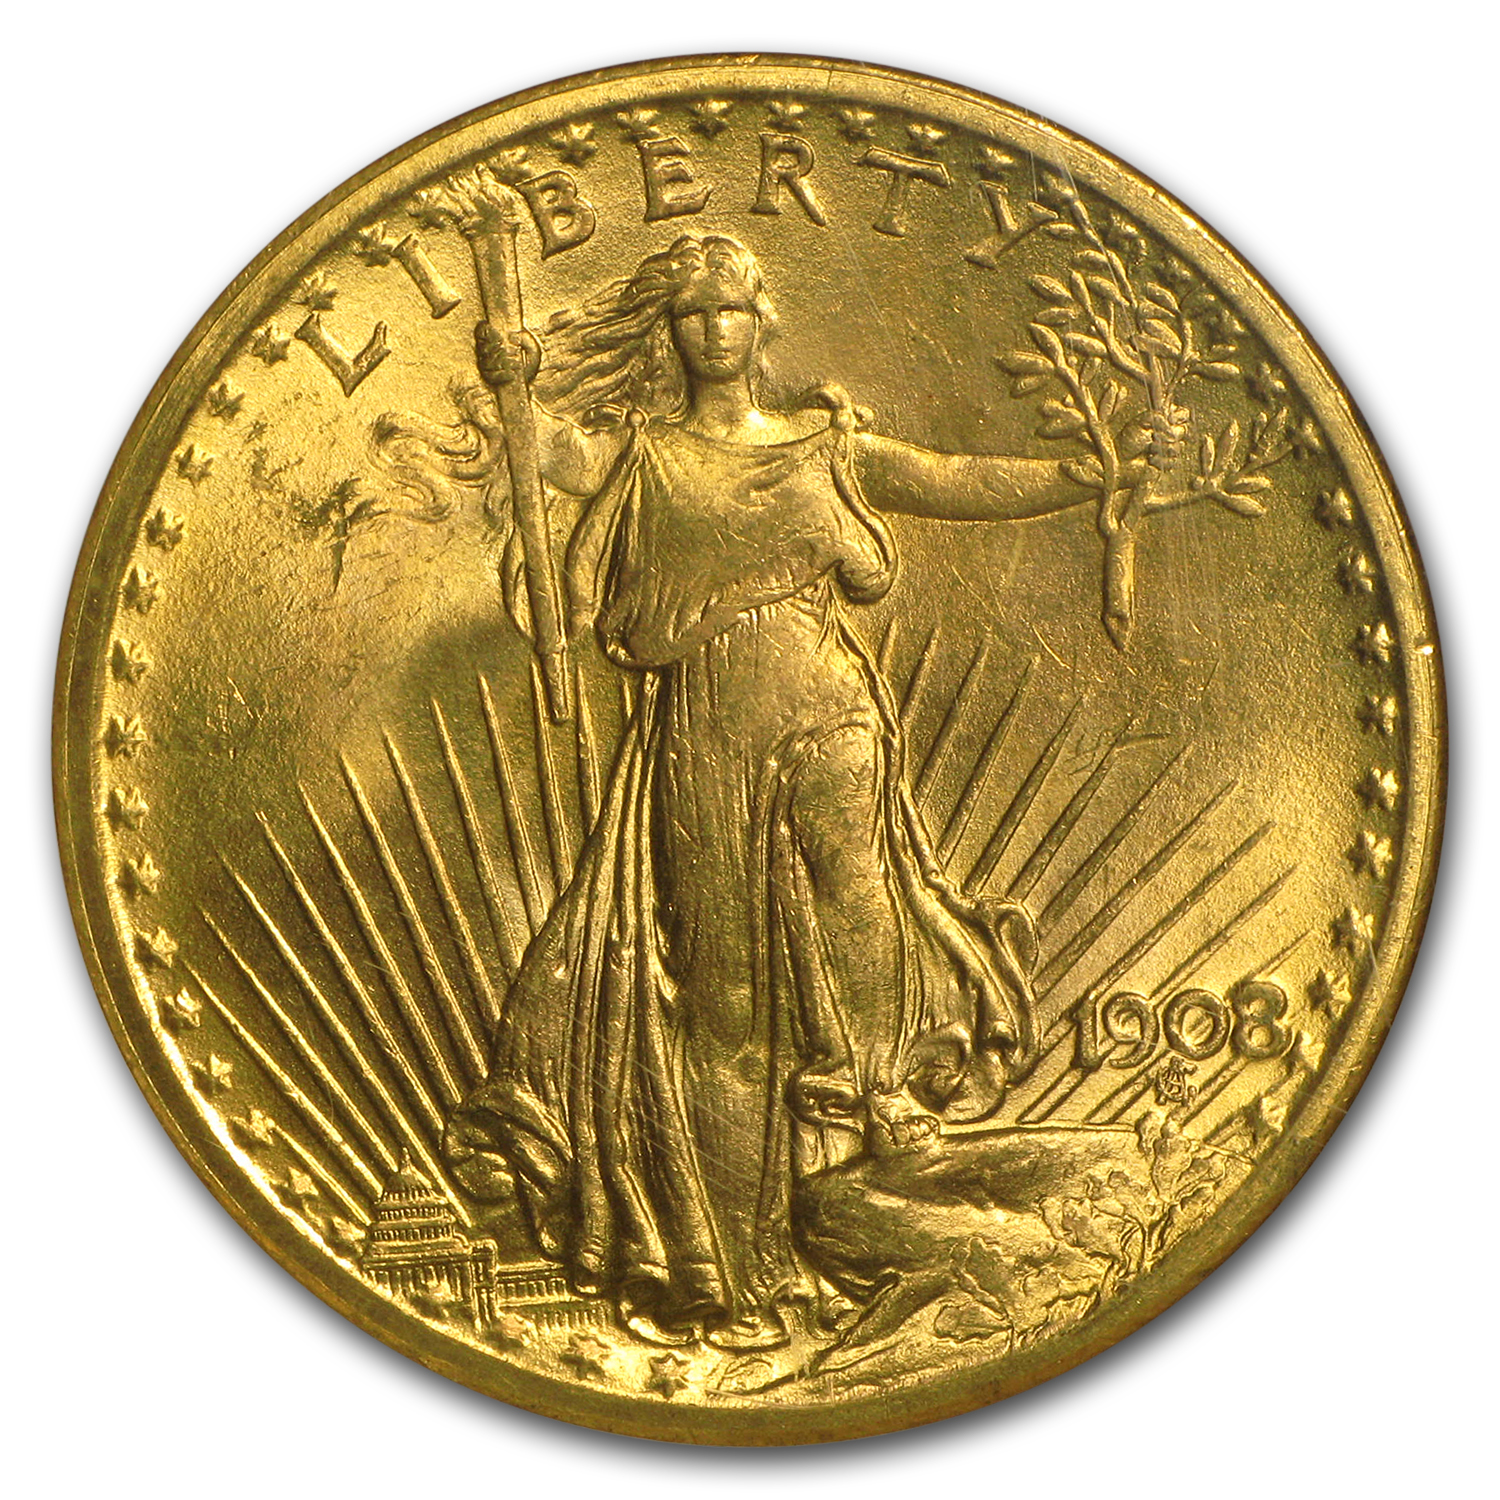 1908 $20 St. Gaudens Gold No Motto MS-65 NGC (Wells Fargo)